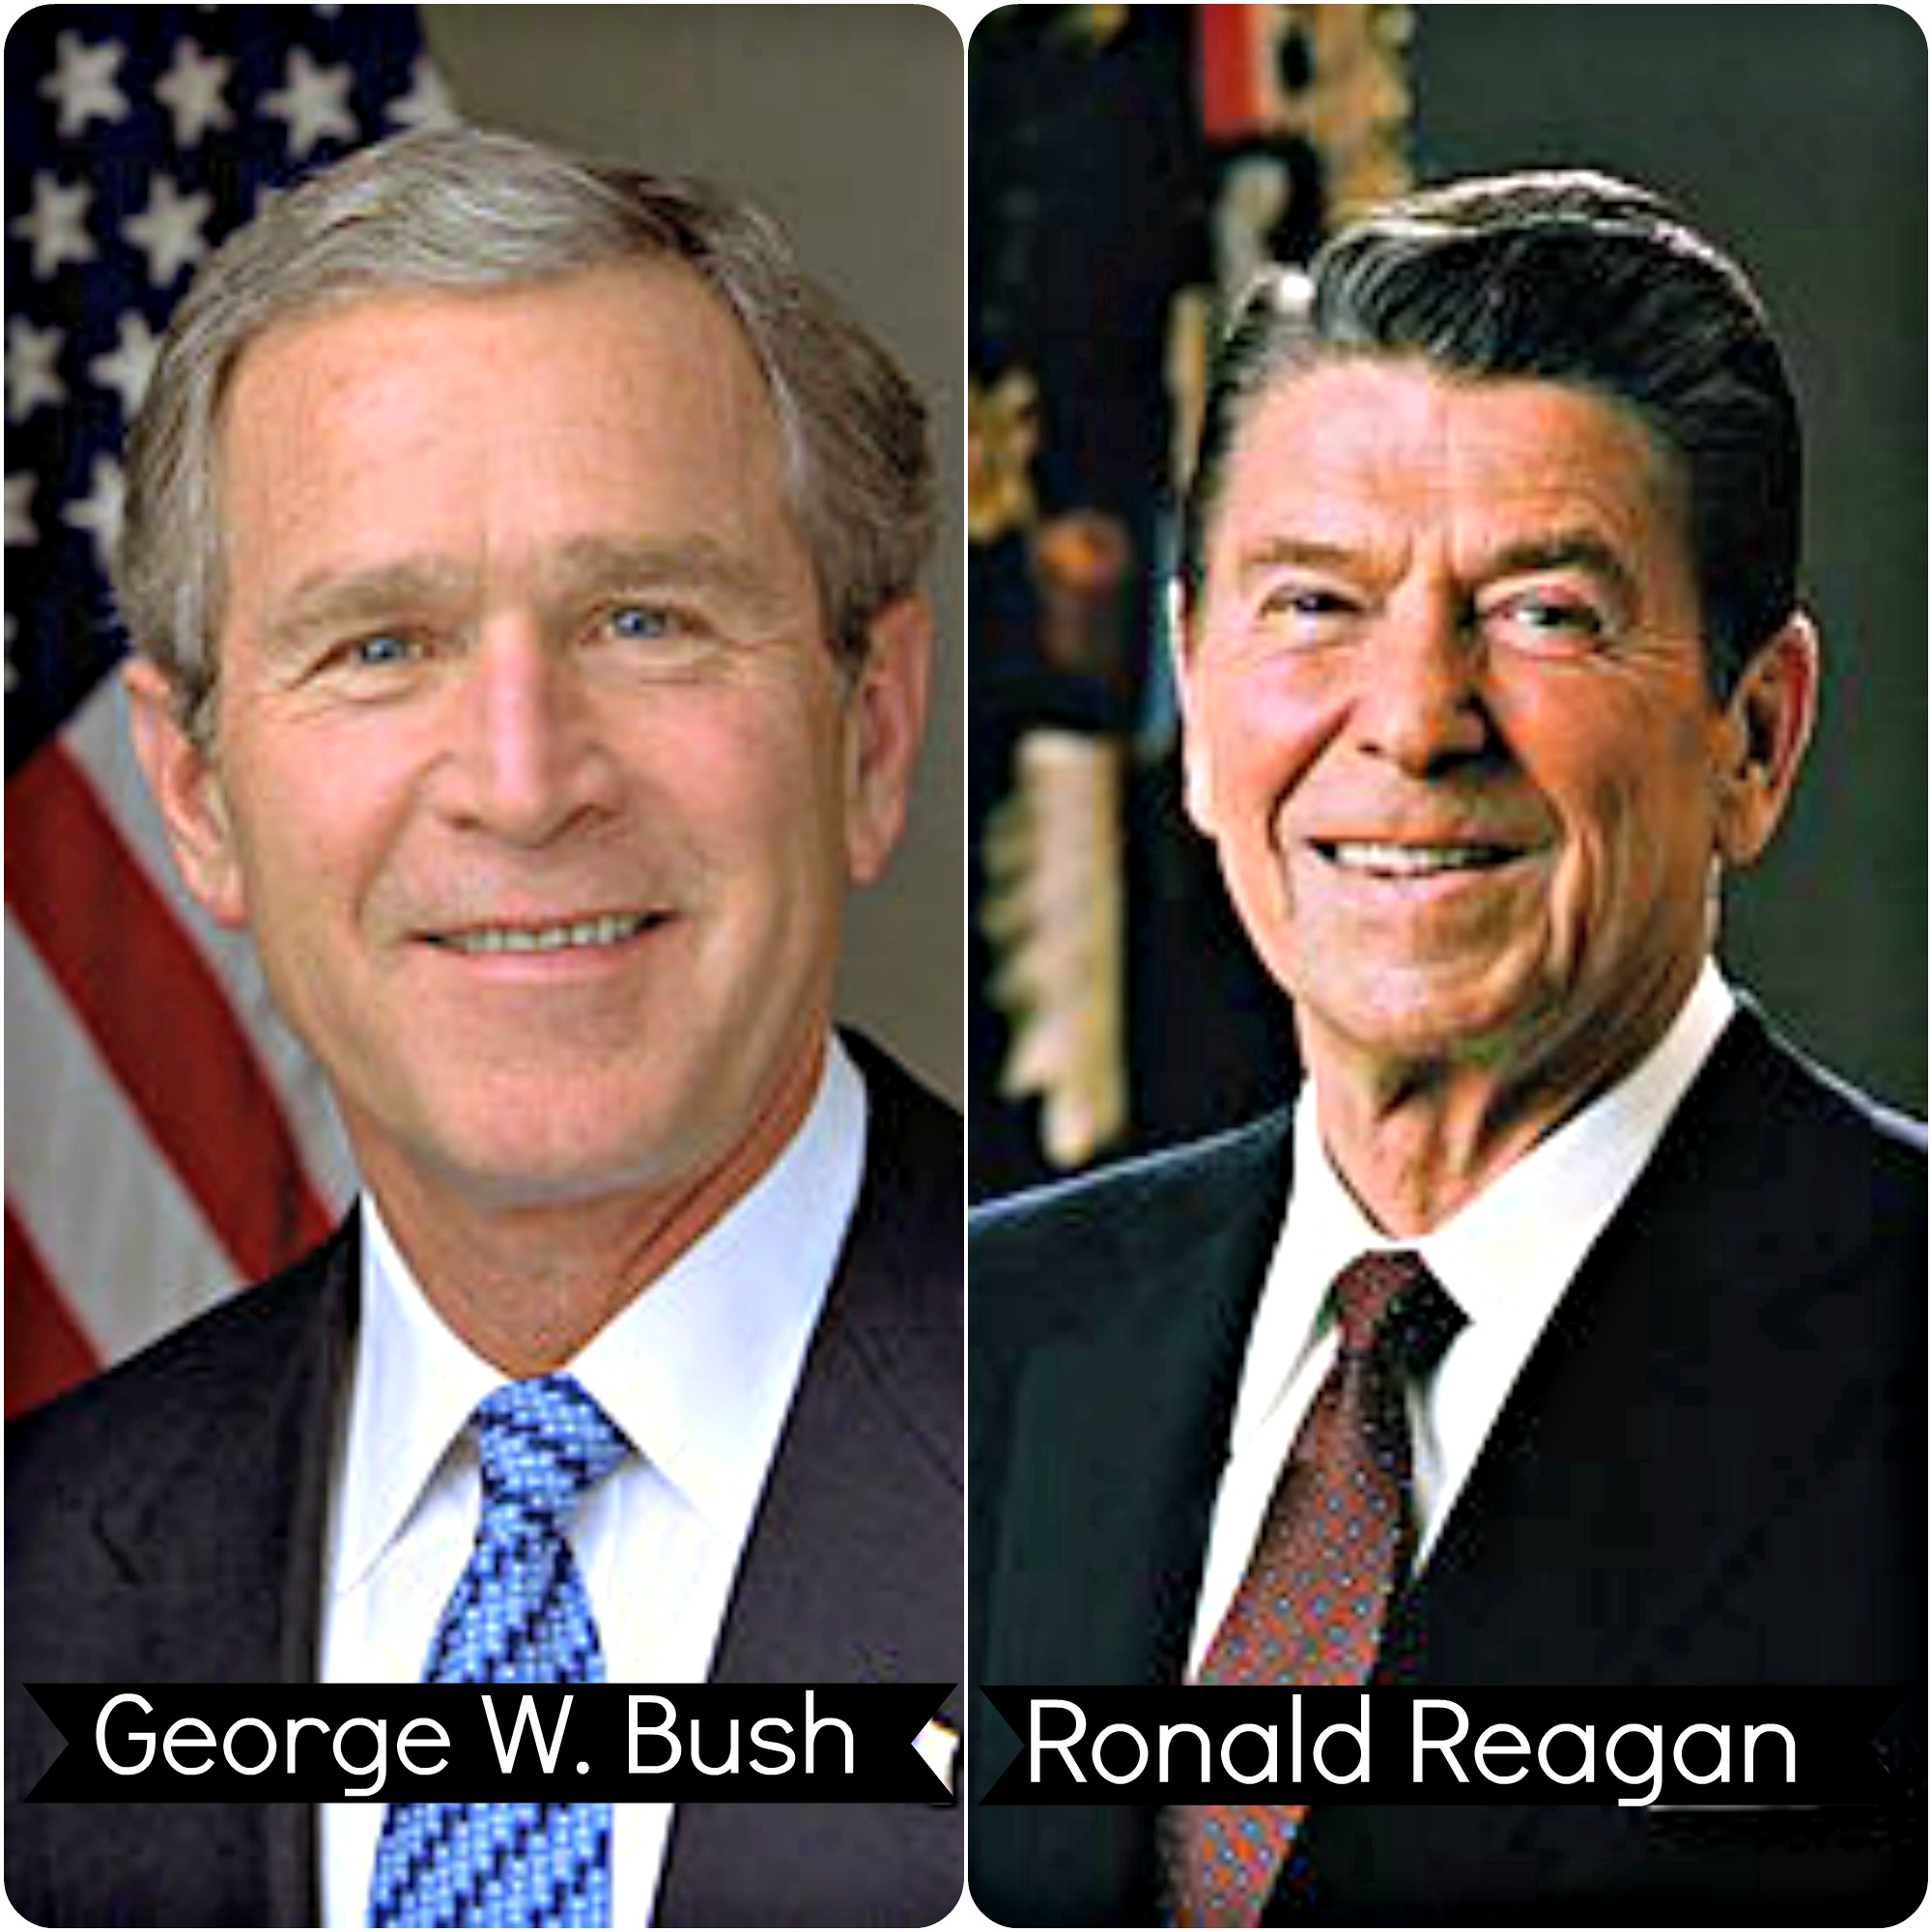 26 Bush and Reagan updated